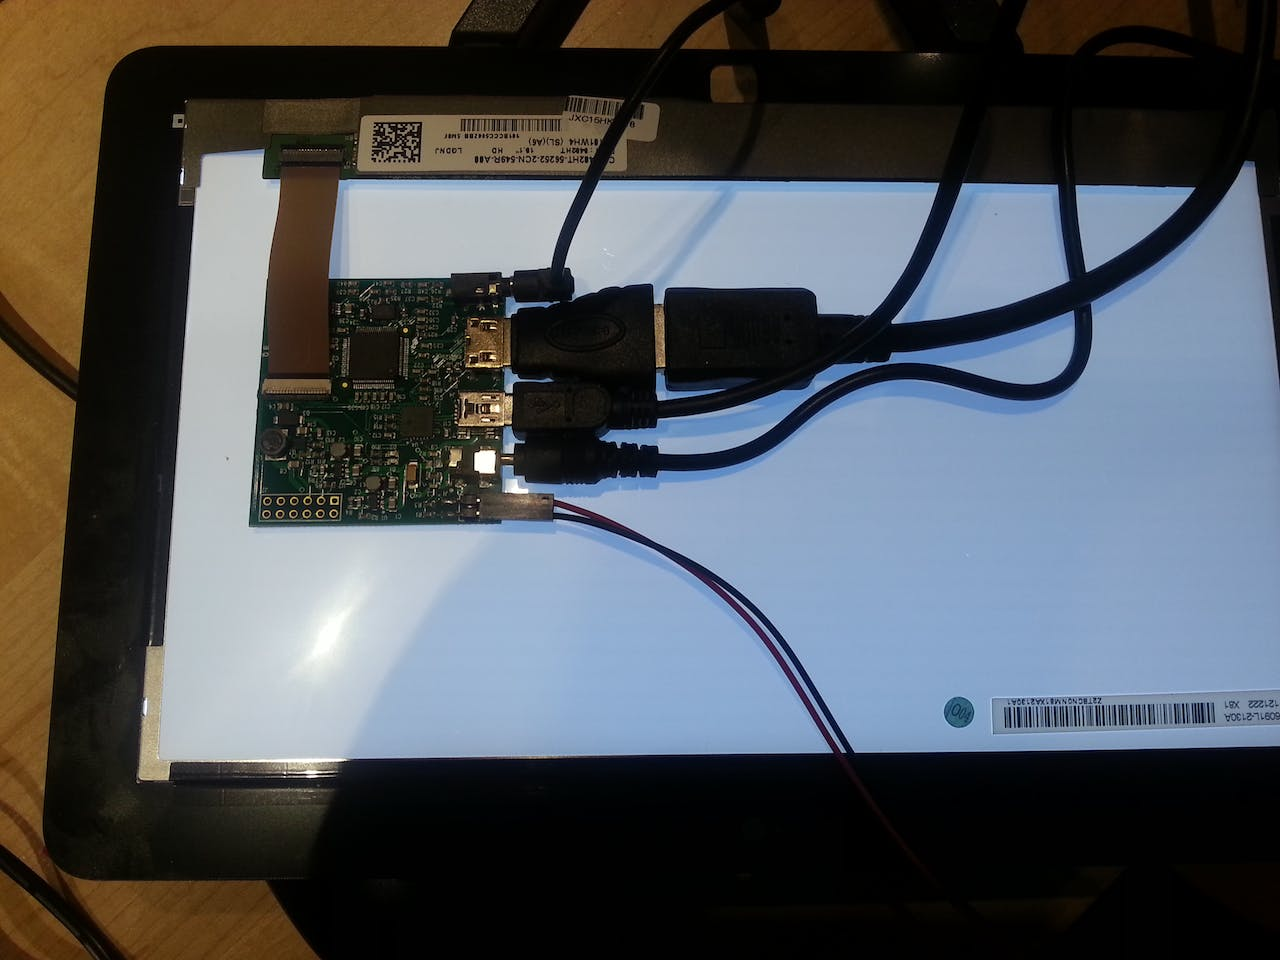 a powerful maritime instrument display controller hackster io